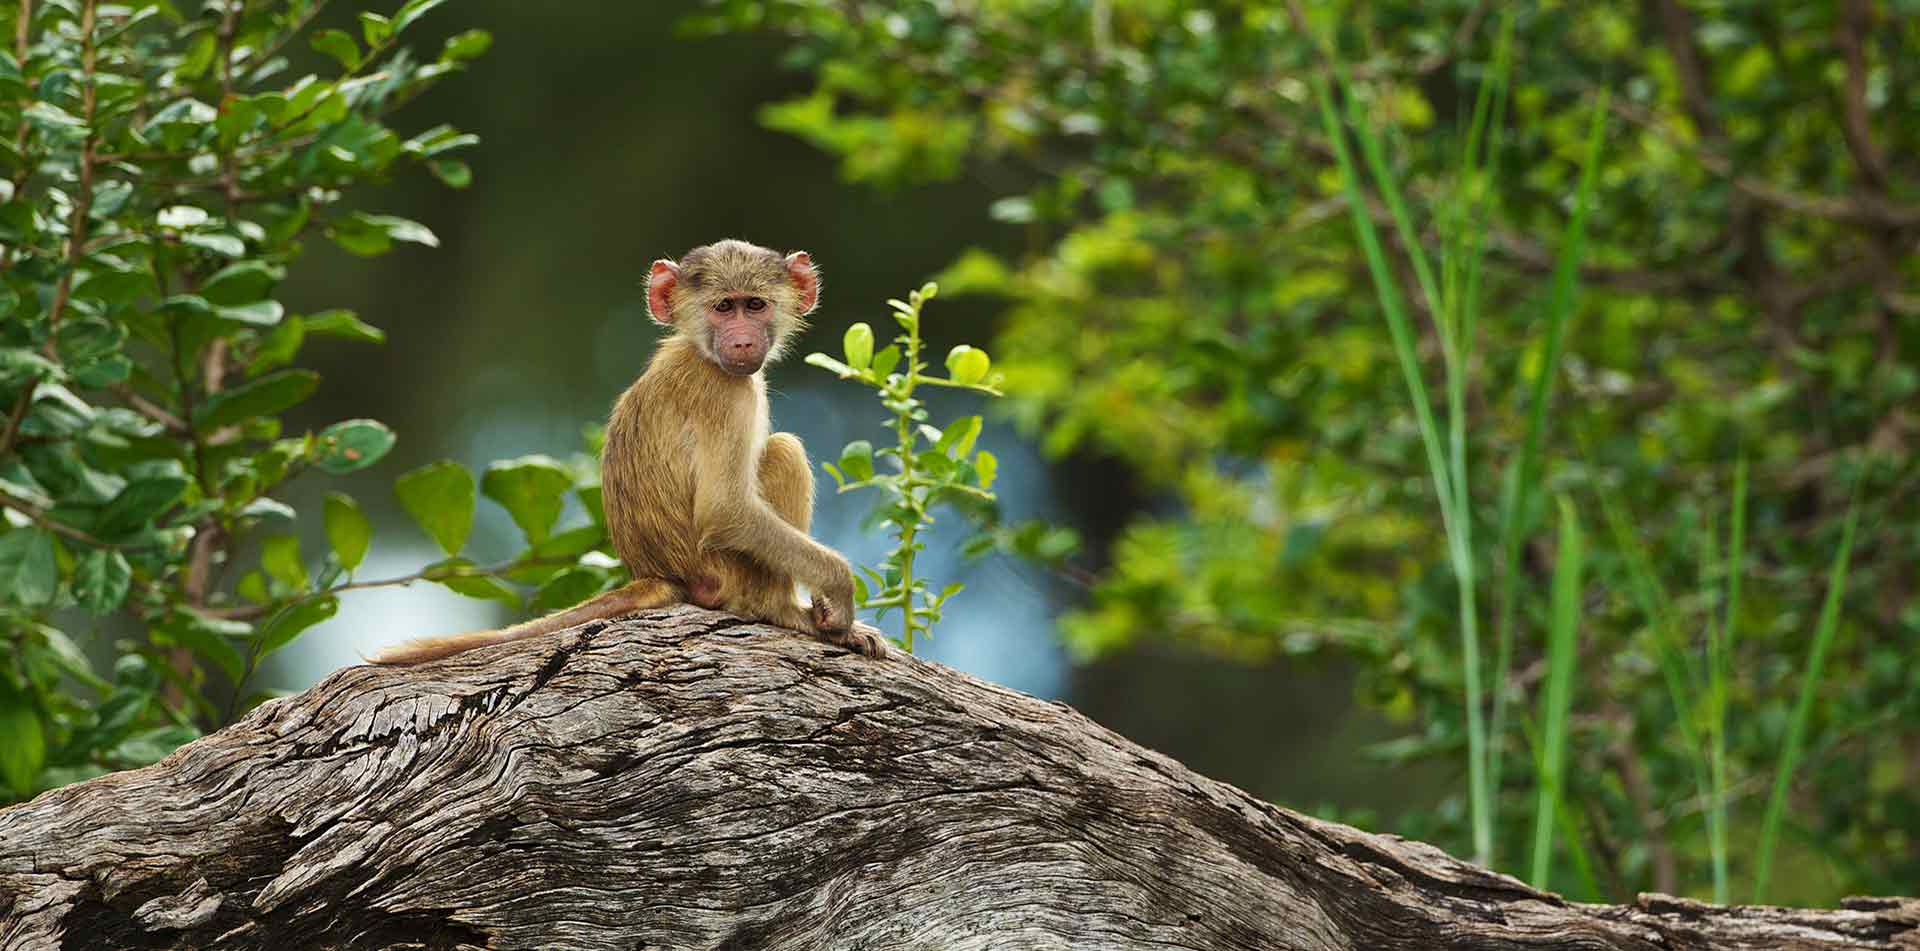 Africa Zambia young baboon sitting on tree trunk wildlife safari nature - luxury vacation destinations